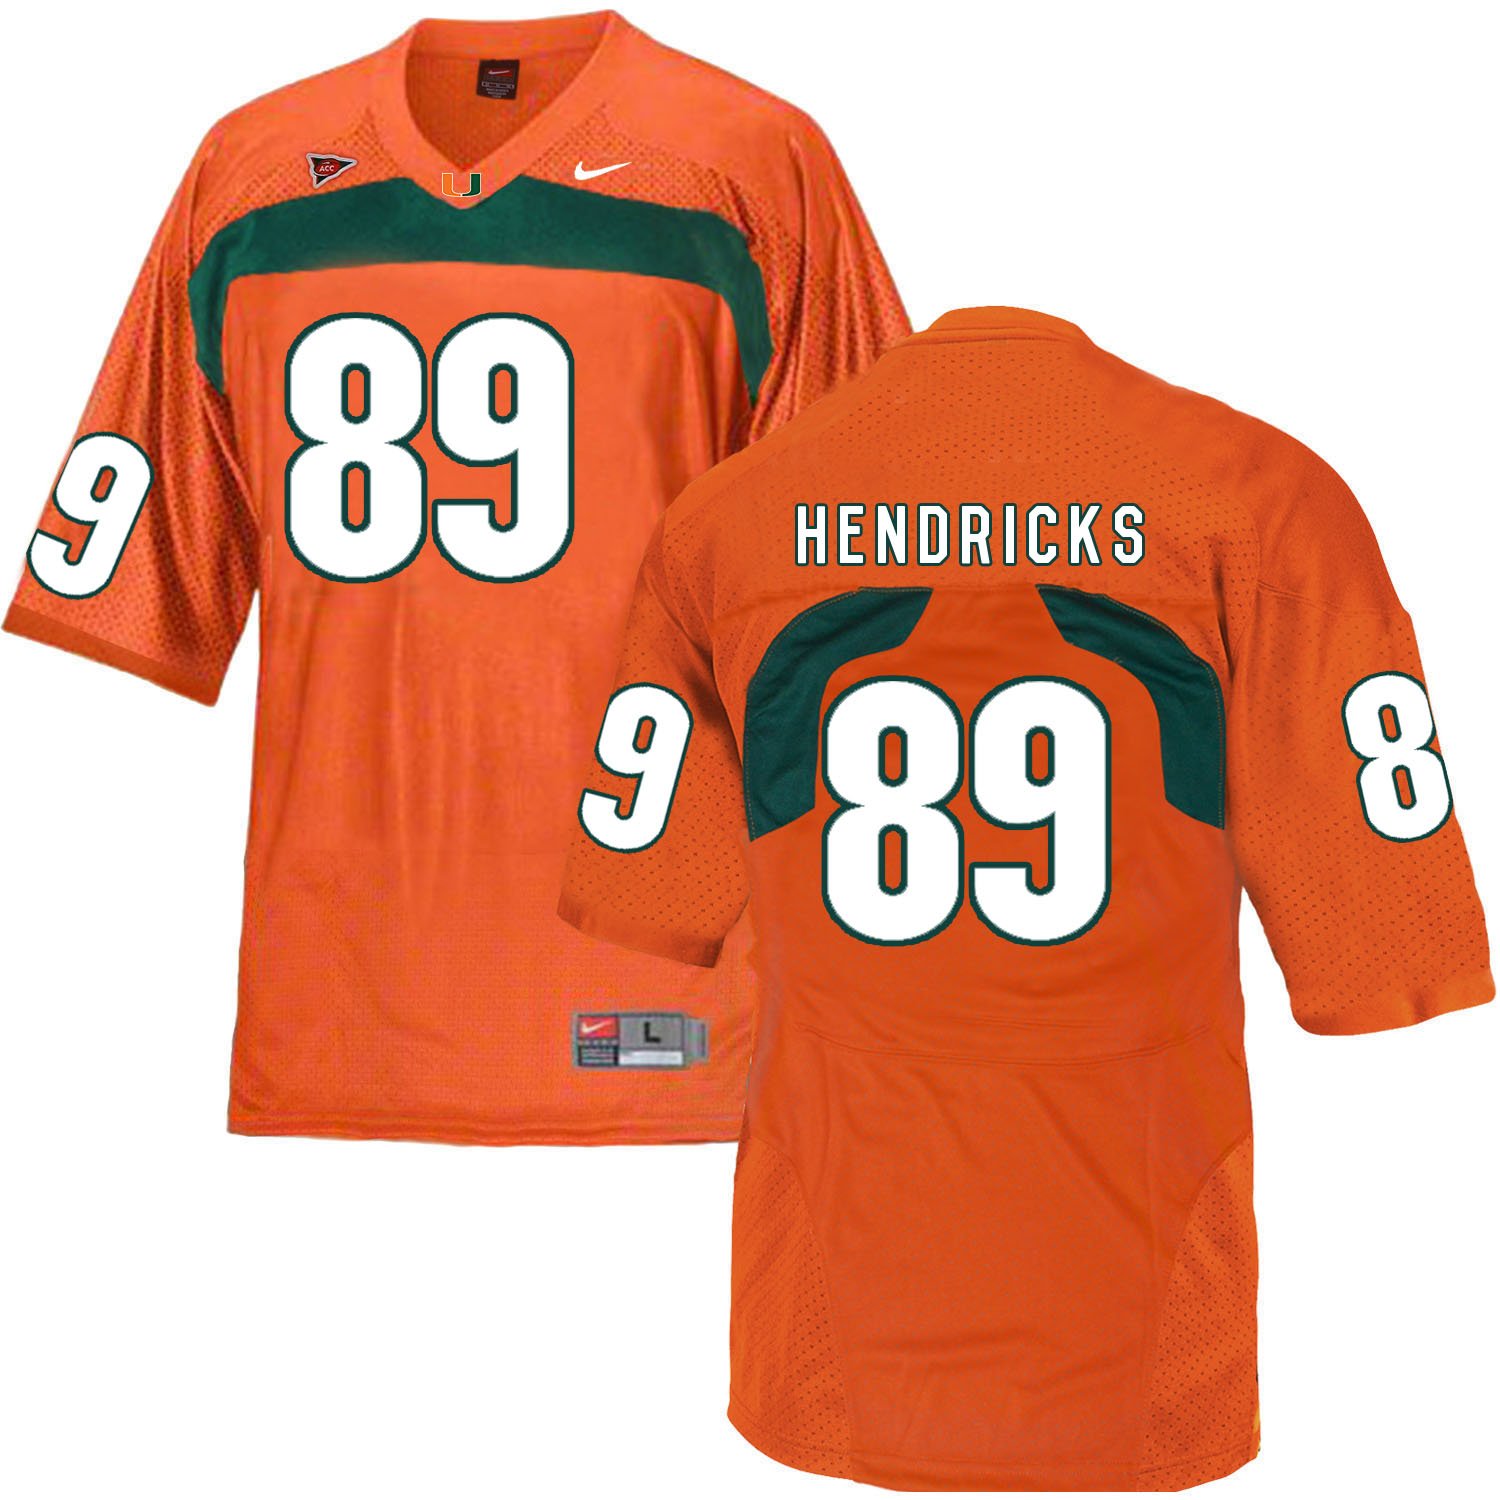 Miami Hurricanes 89 Hendricks Orange College Football Jersey